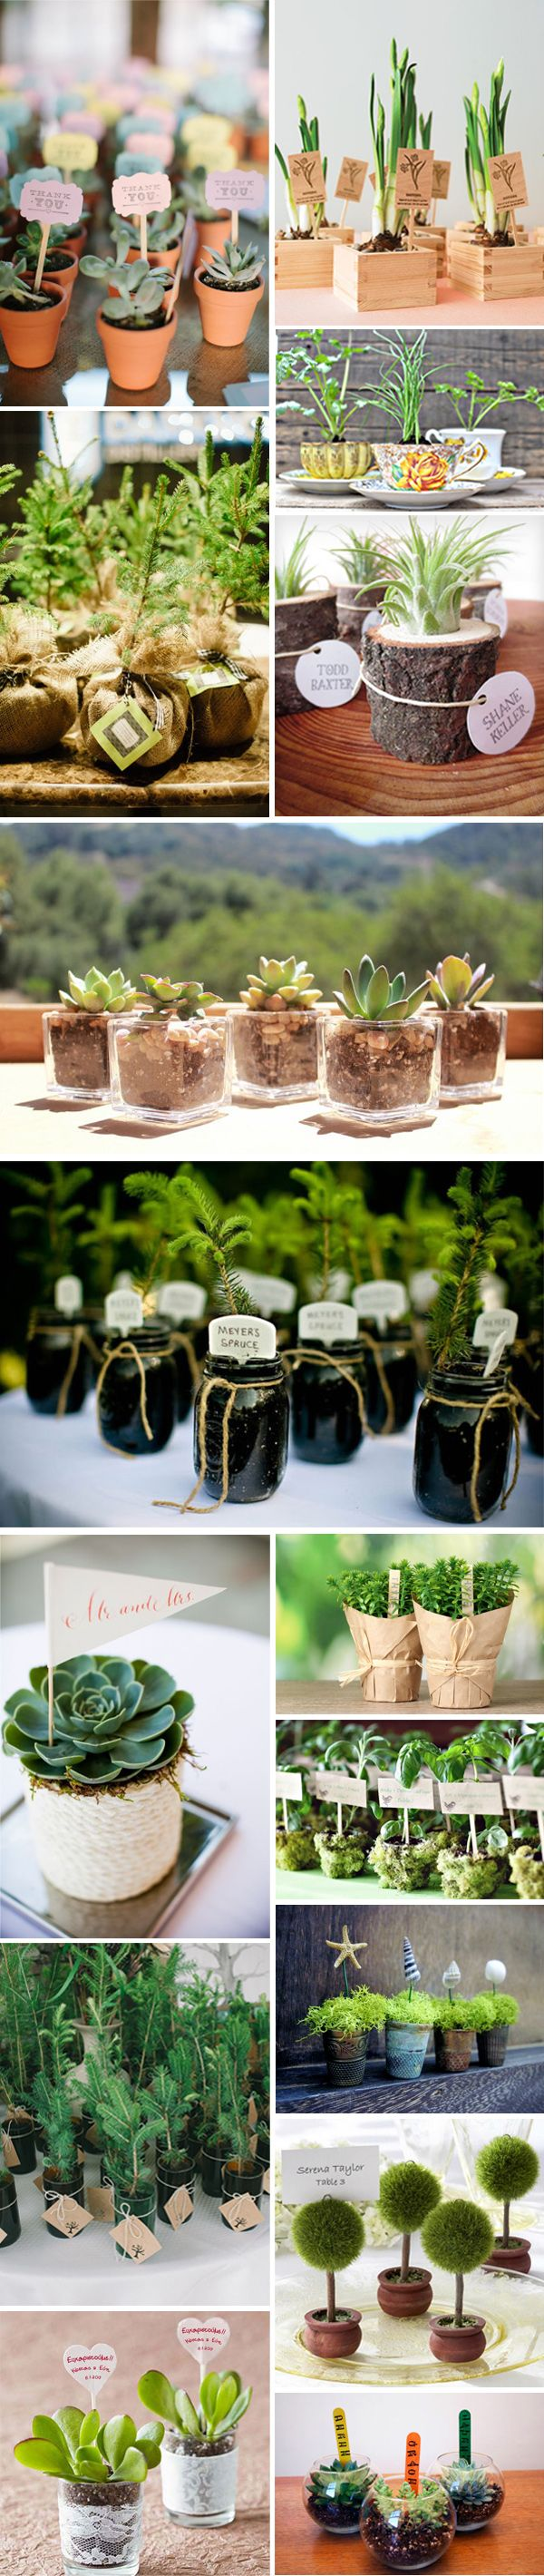 11 Ultimate Great Ideas for Lovely Plant Wedding Favors                                                                                                                                                                                 More